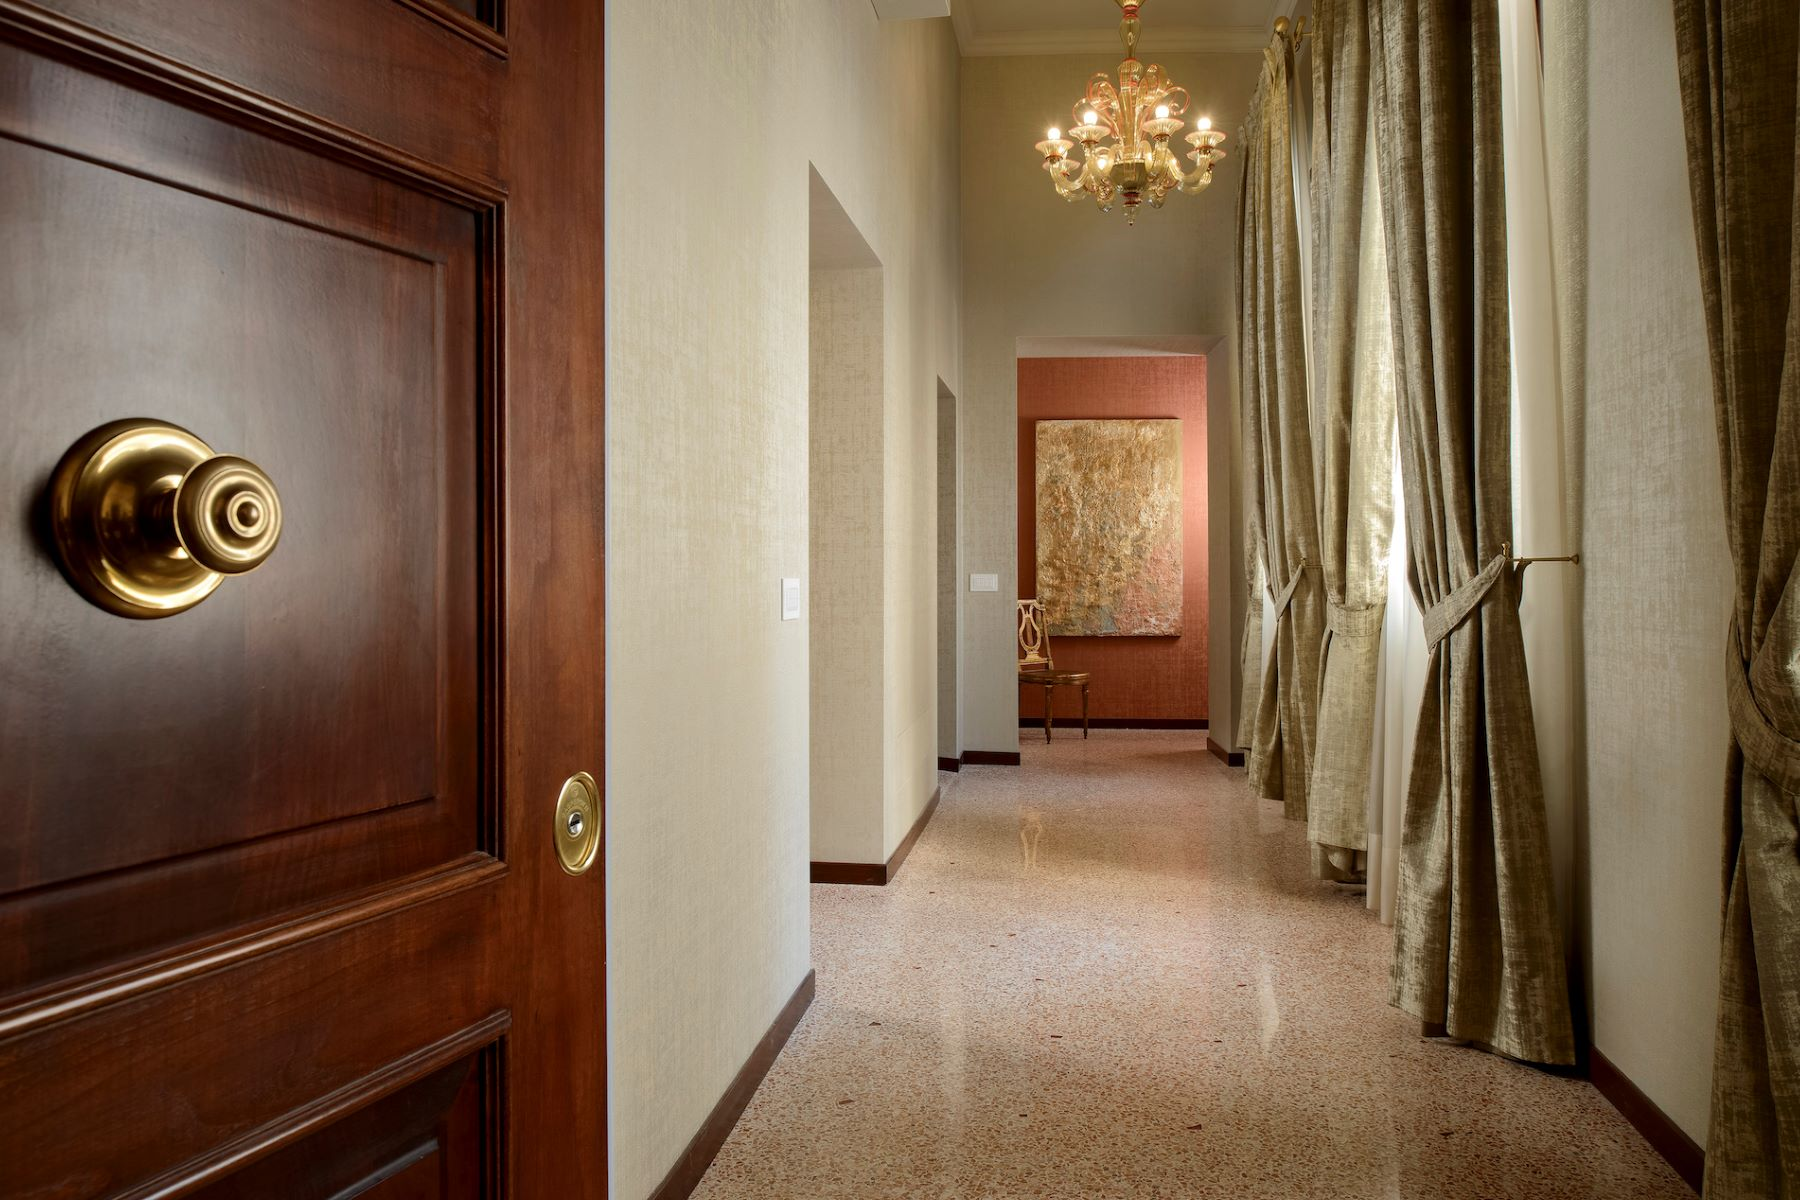 Additional photo for property listing at Vignole apartment at Palazzo Moro Venice Venice Venice, Venice 30124 Italien